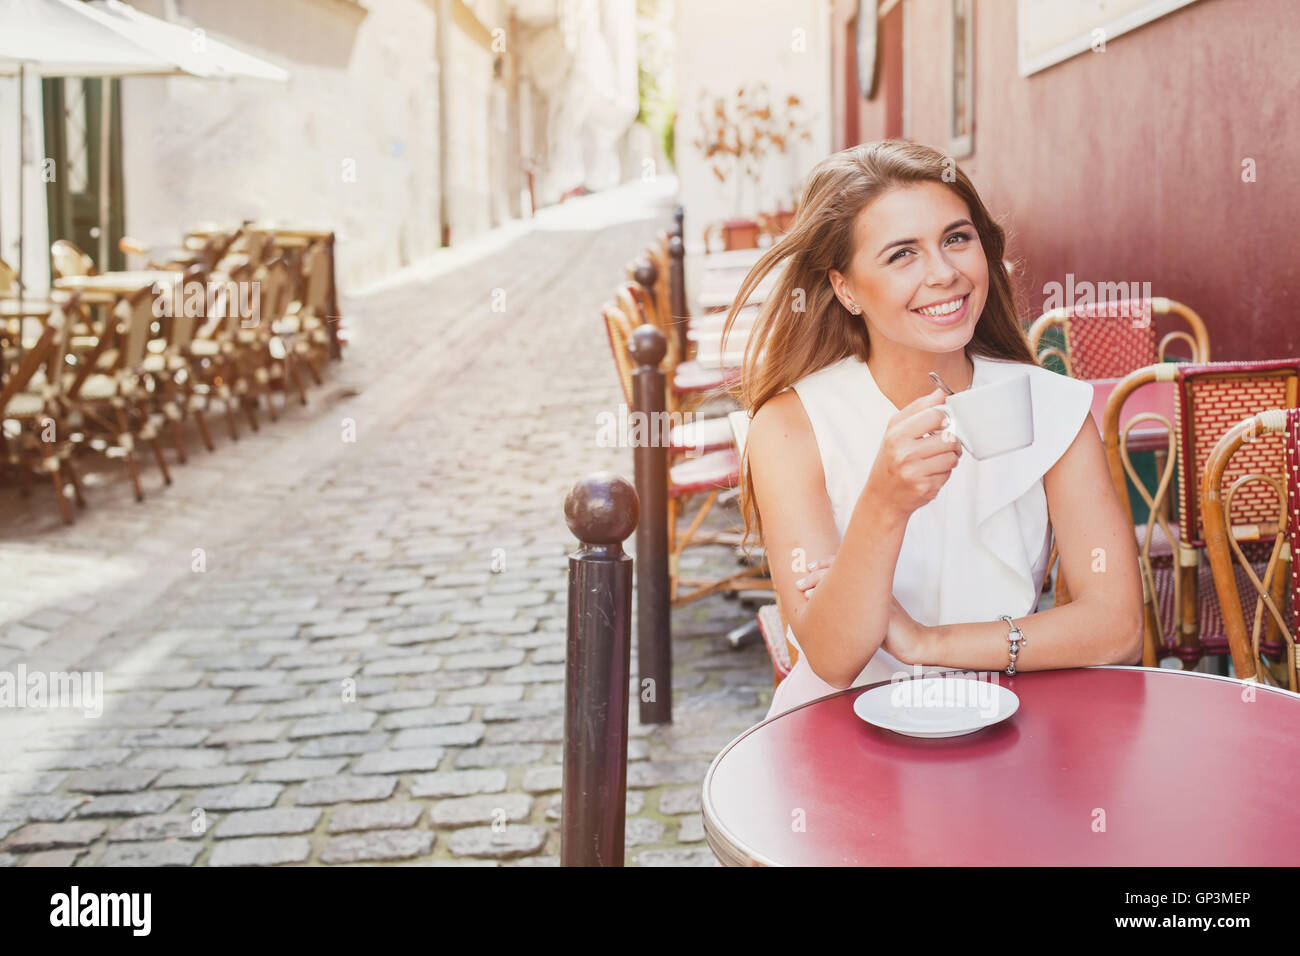 smiling woman drinking coffee in street cafe - Stock Image